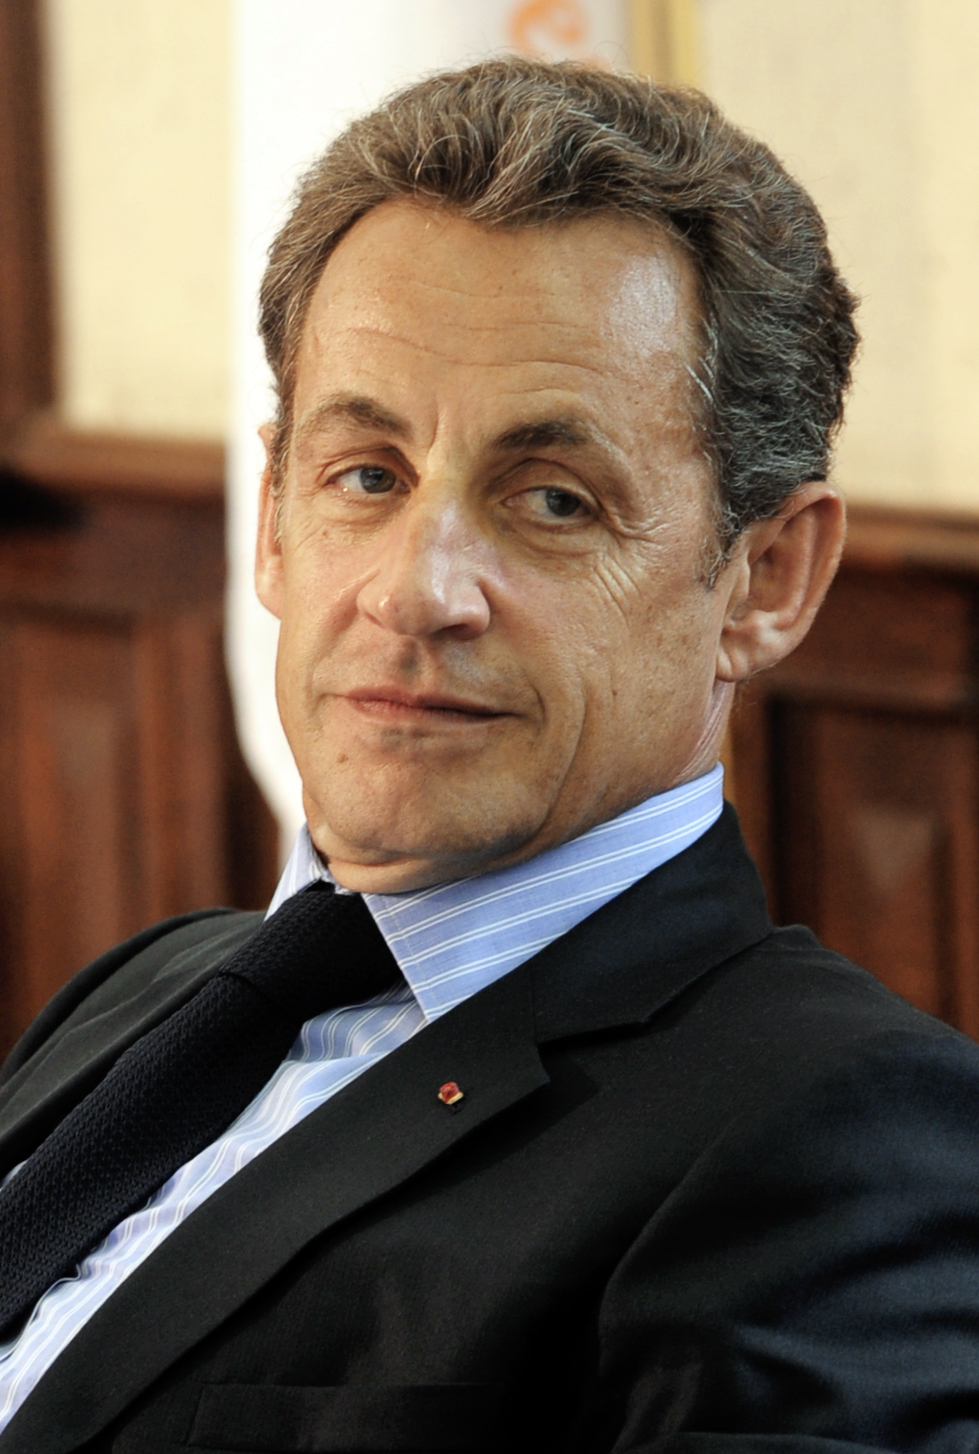 sarkozy - photo #18